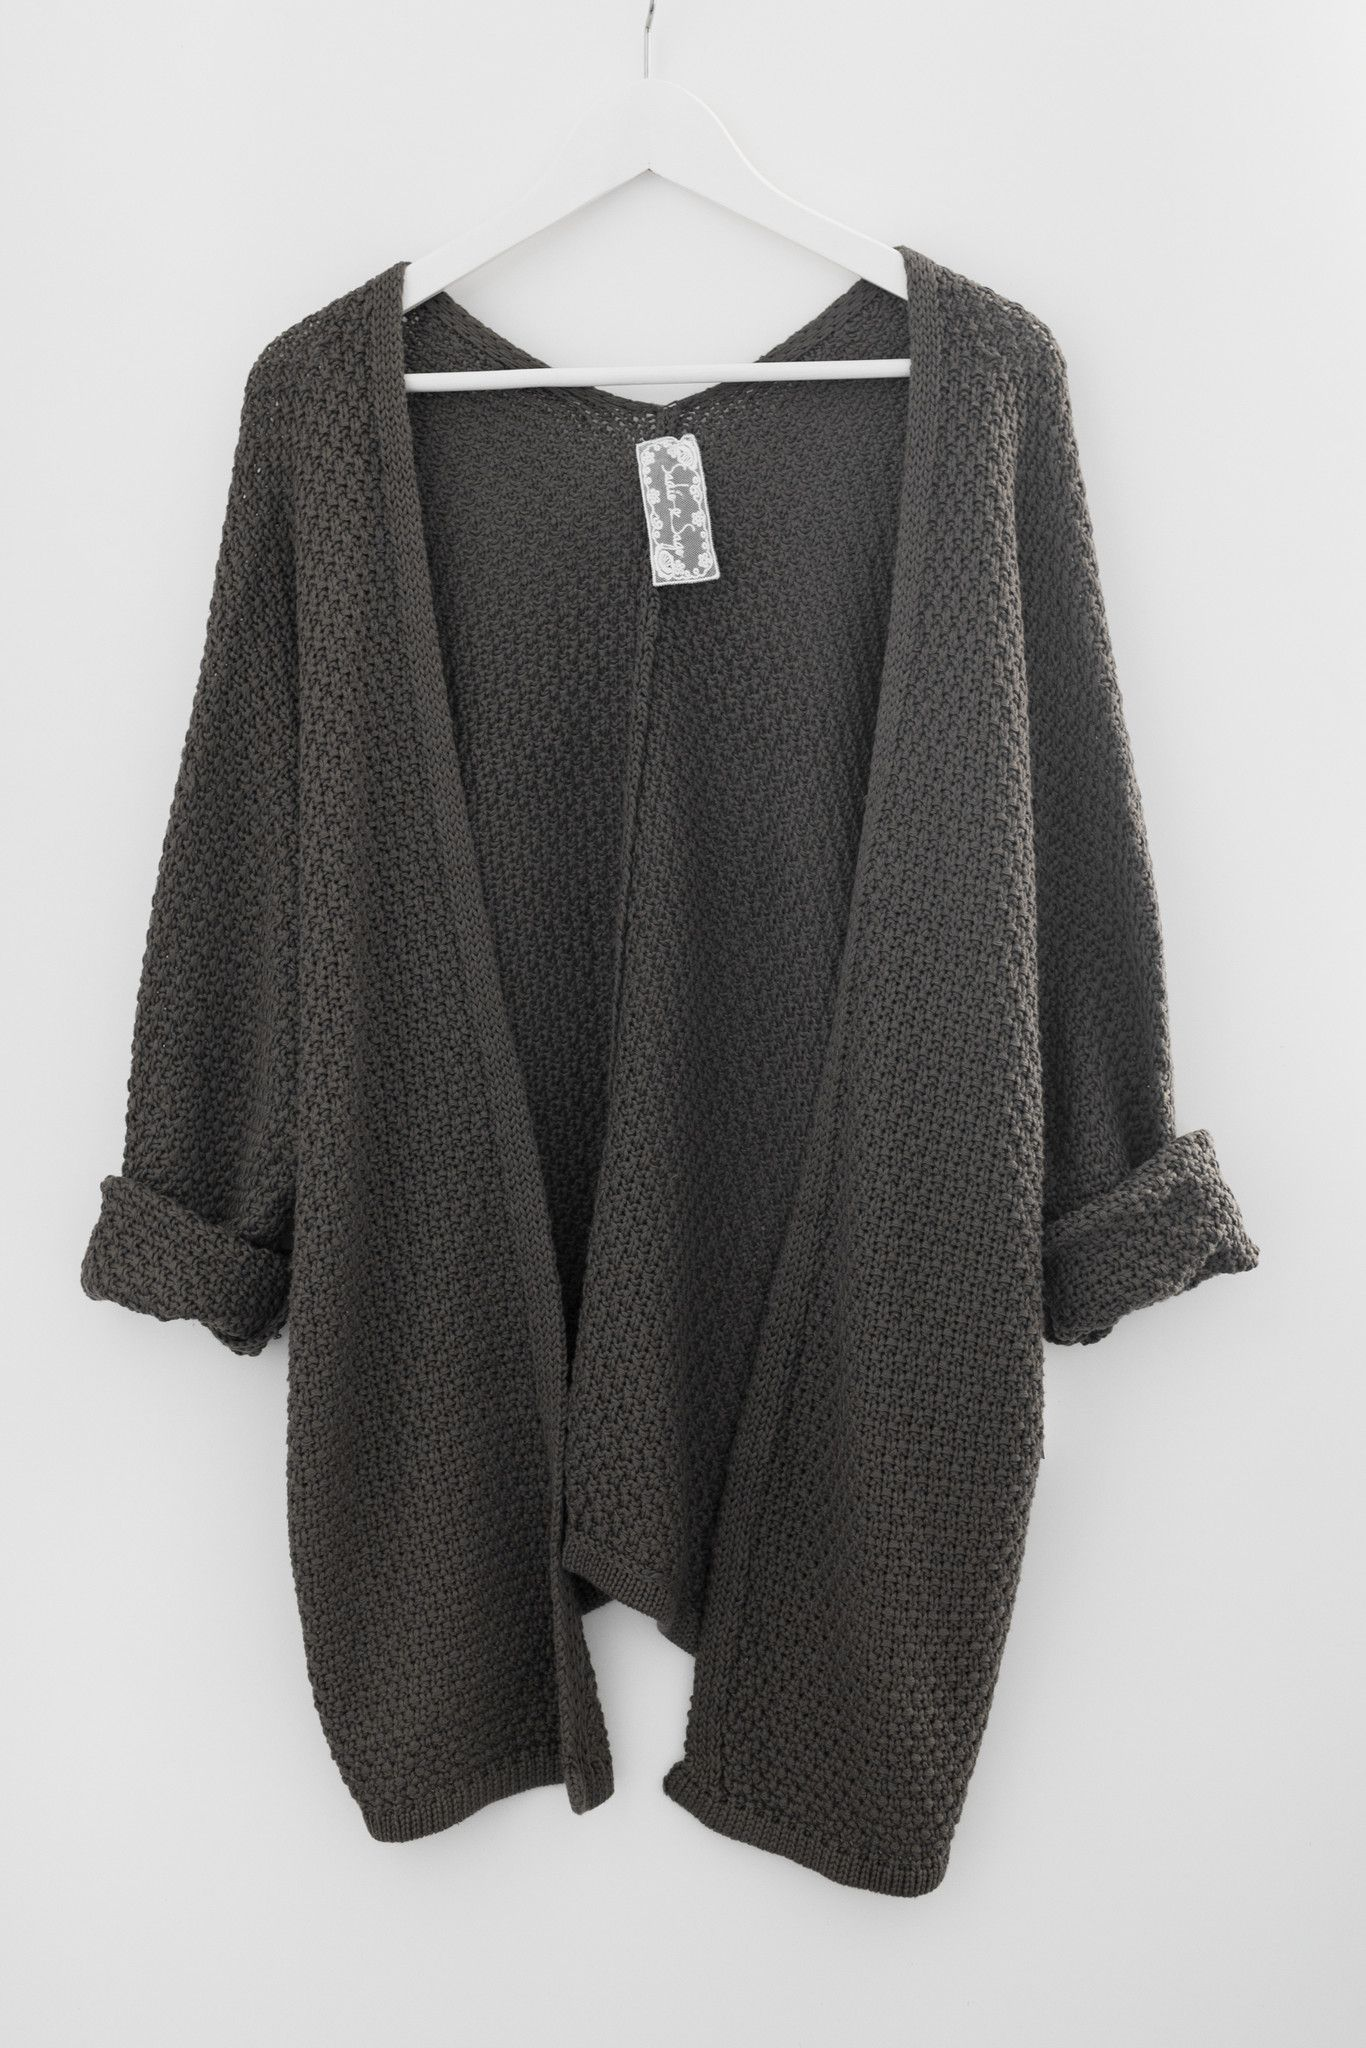 Slouchy sweater knit cardigan - Long dolman sleeves - Loose ...